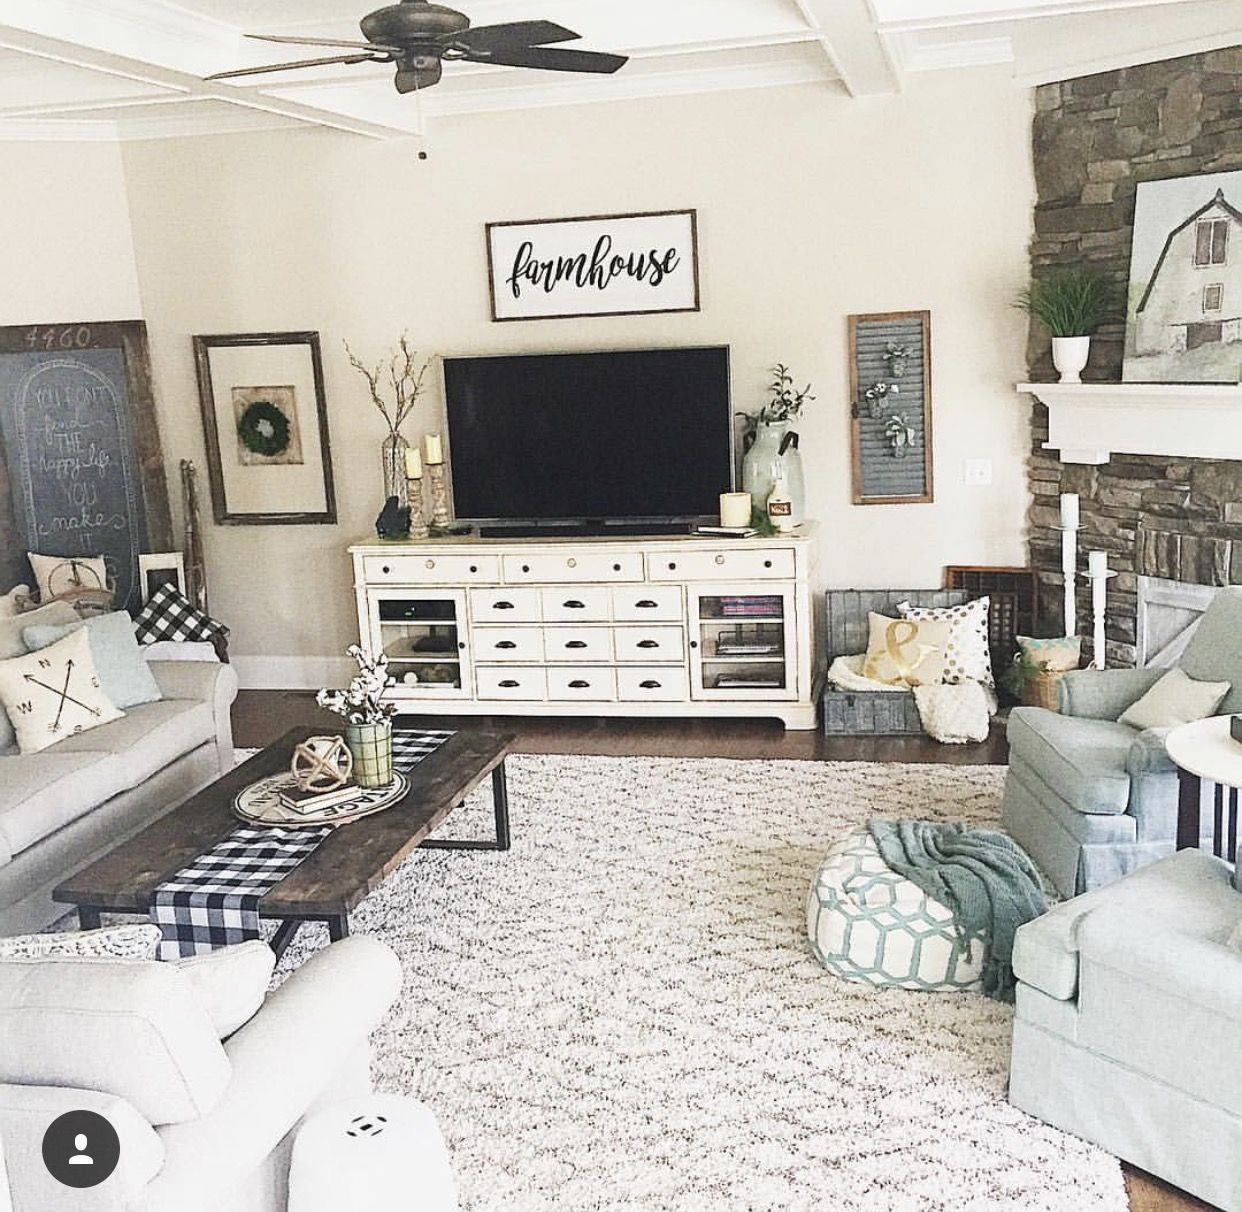 Pin by Amber Olberding on Living Room Ideas ♥ | Pinterest | Front ...